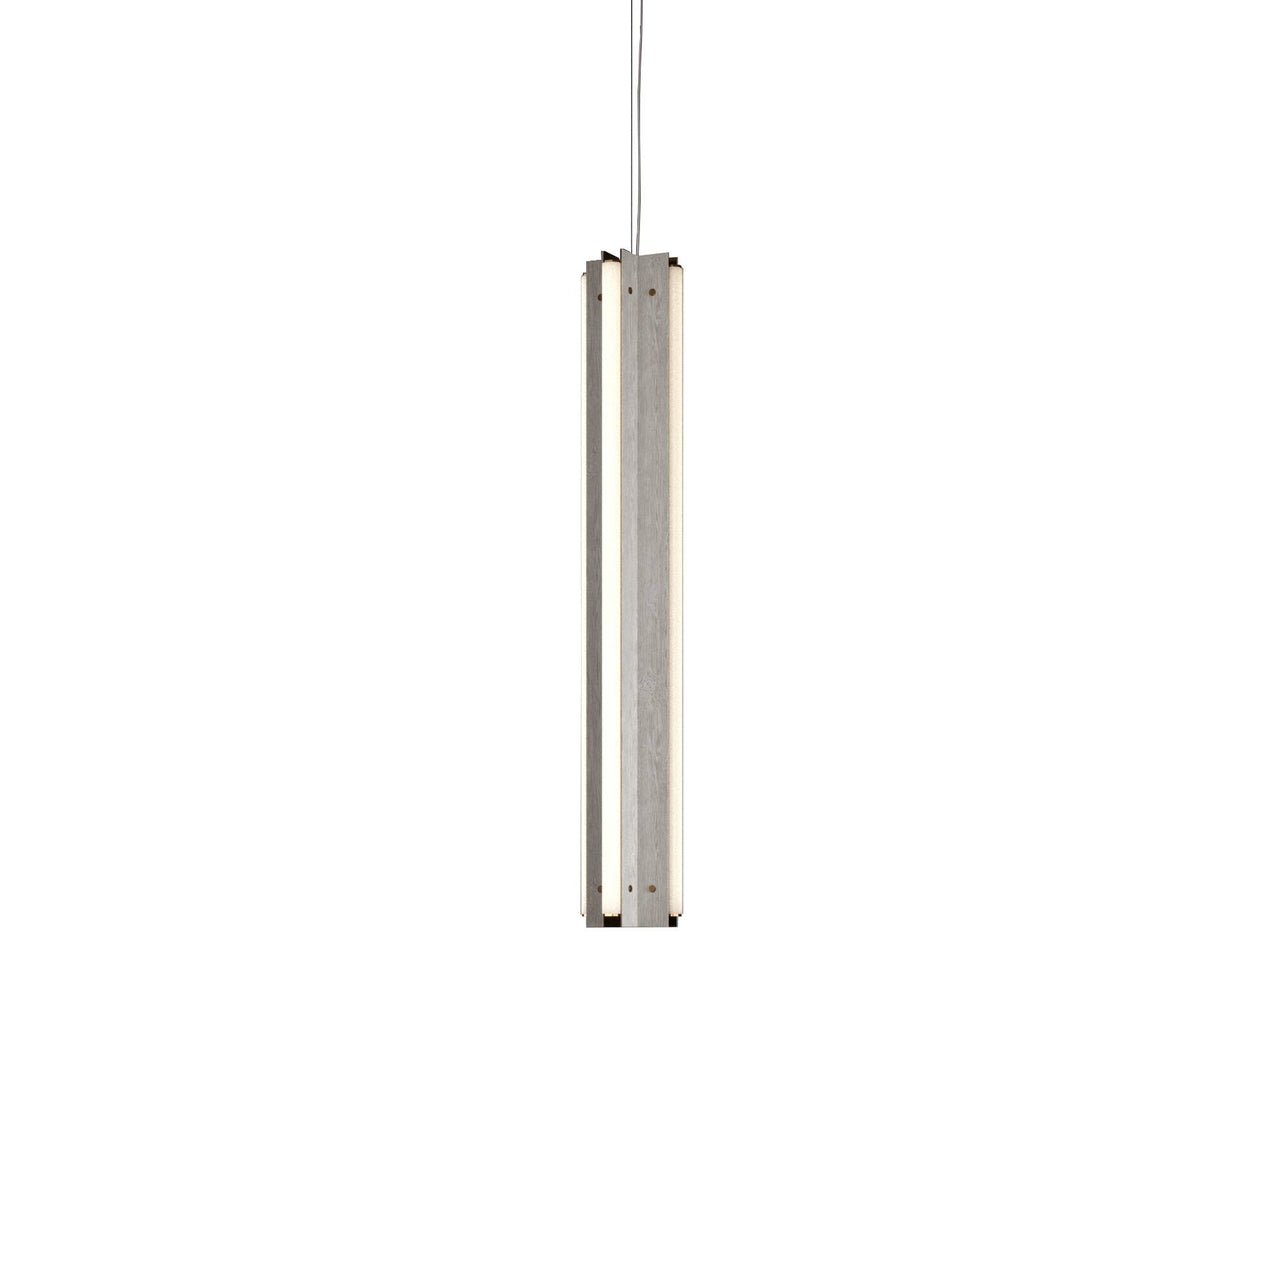 Axis X Suspension Light: 36